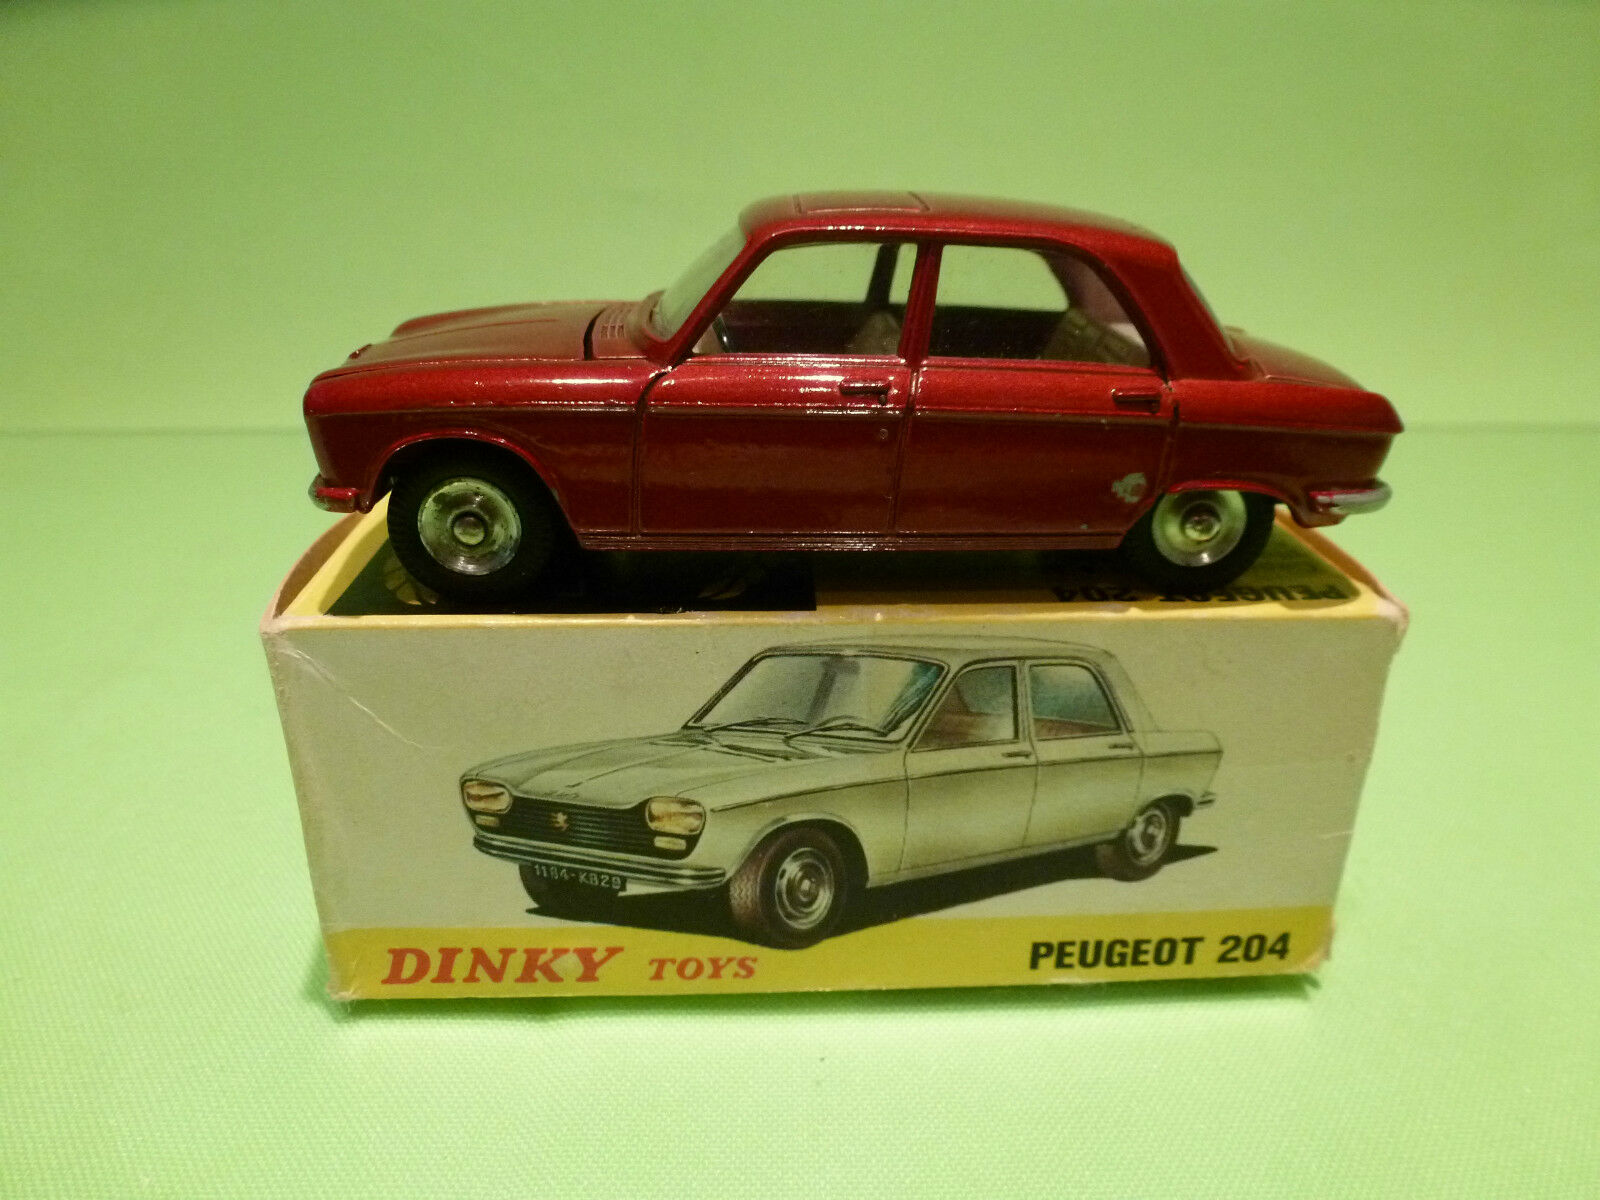 DINKY TOYS 510 PEUGEOT 204 - RARE SELTEN - EXCELLENT CONDITION IN BOX